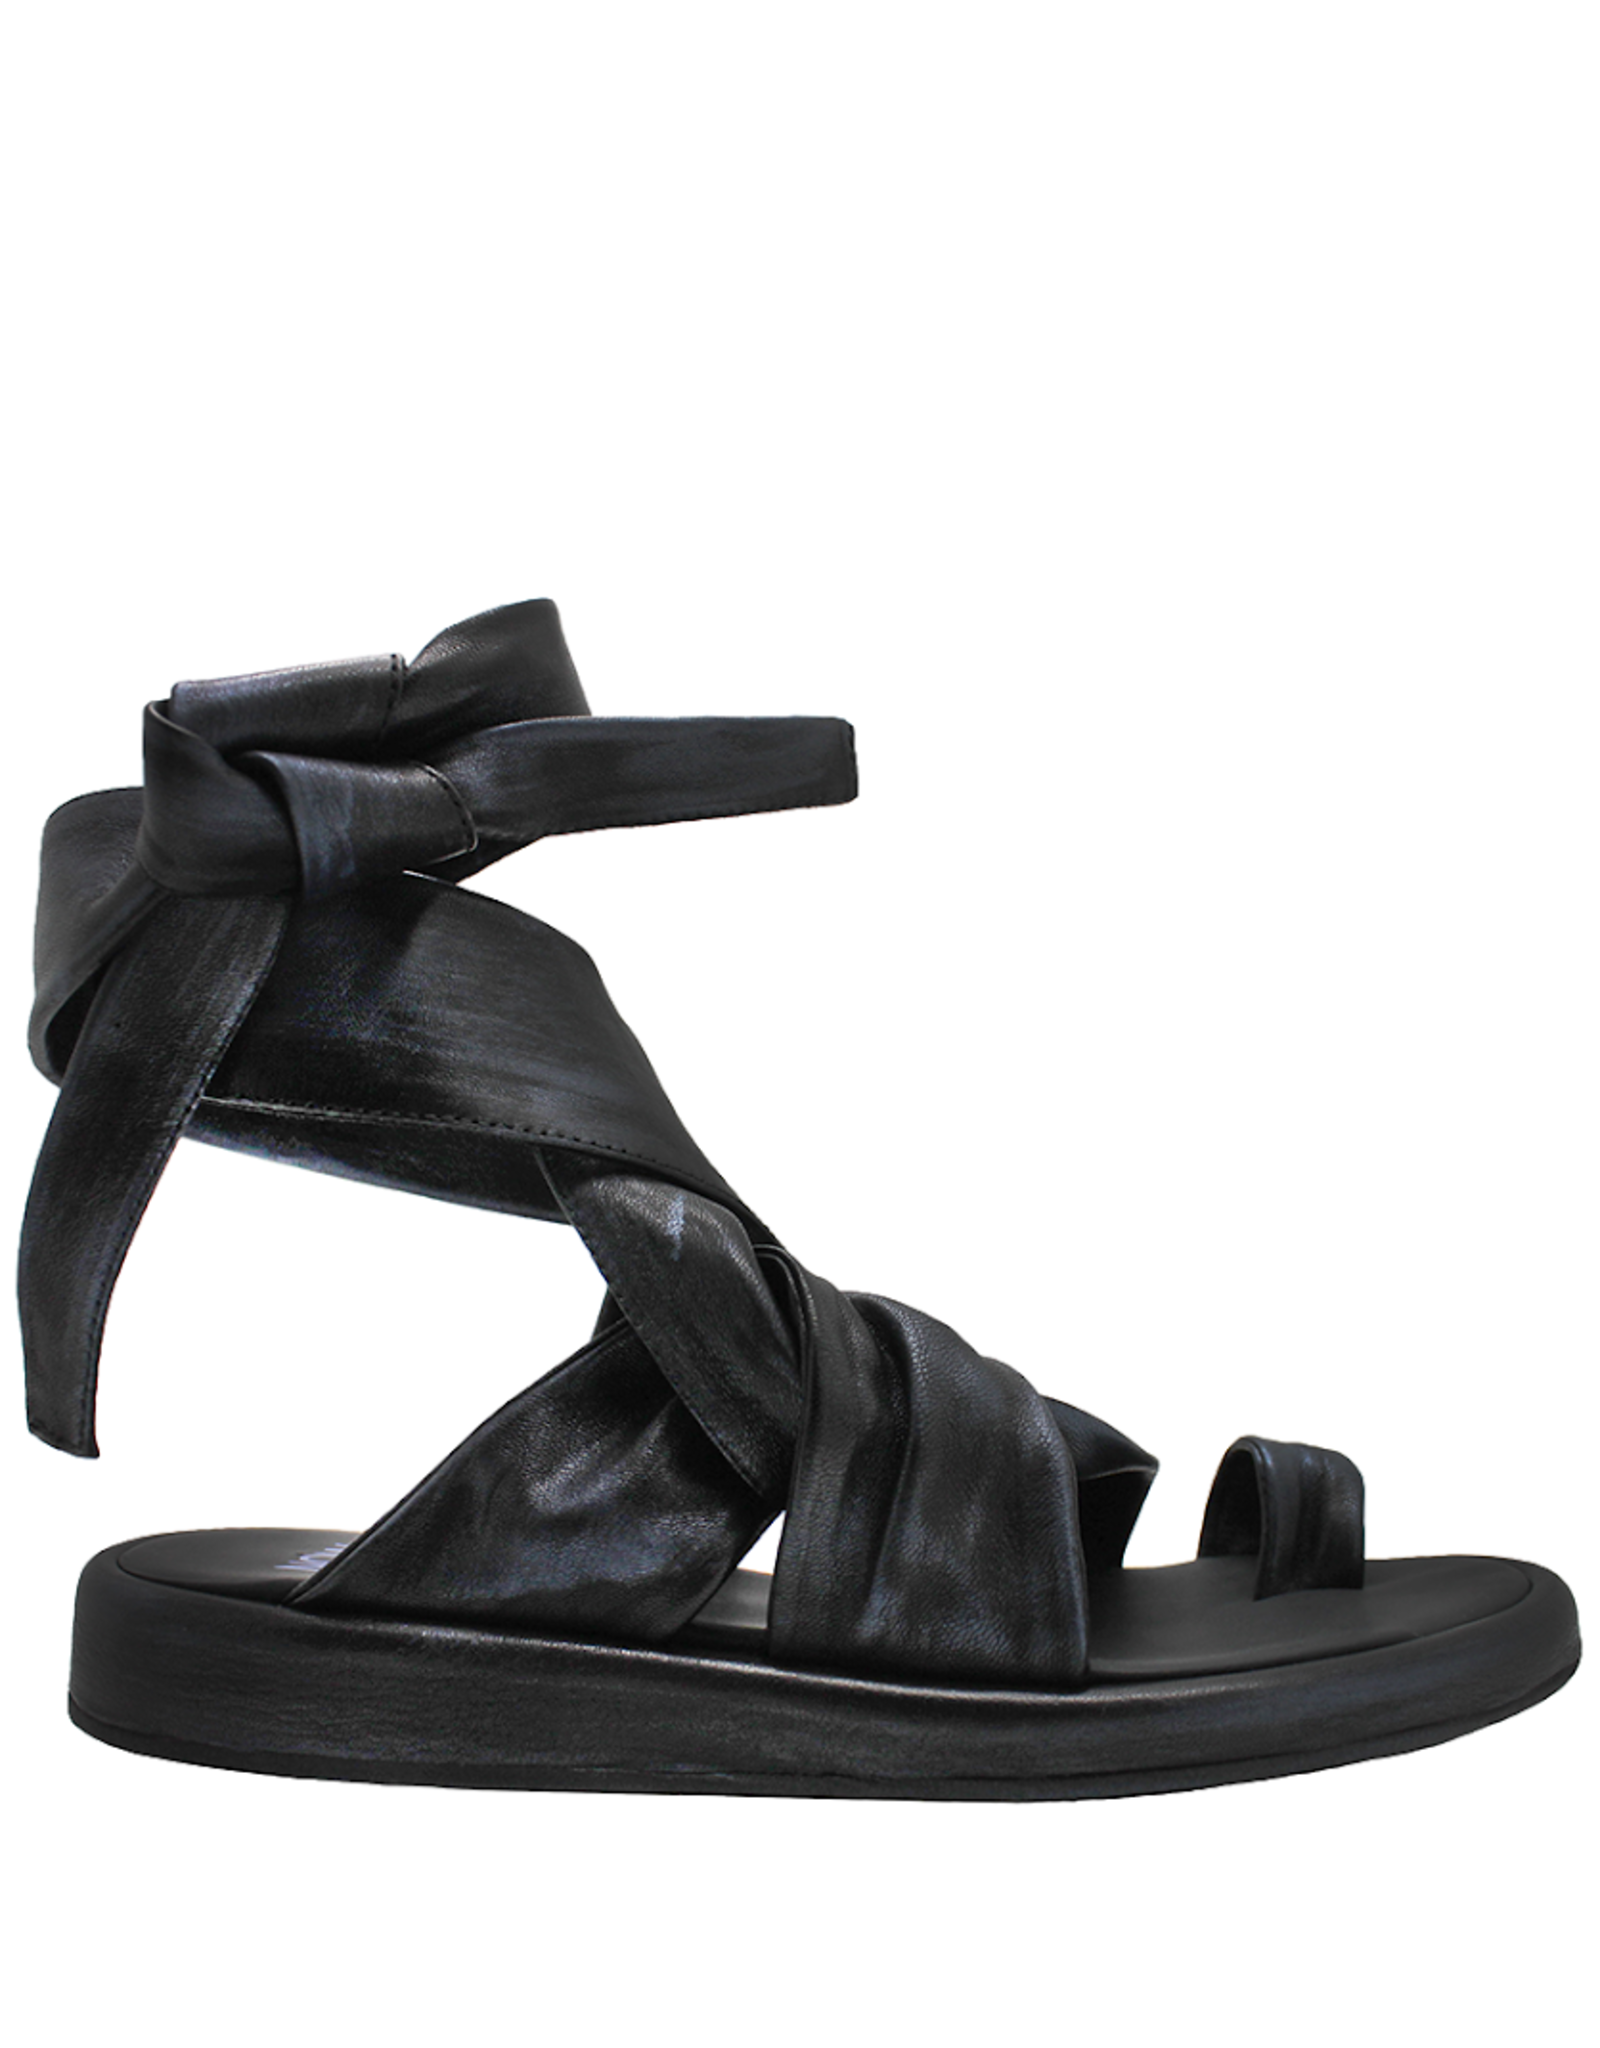 Now Now Black/Blue Asym Ankle Tie Toe Ring Sandal-6091